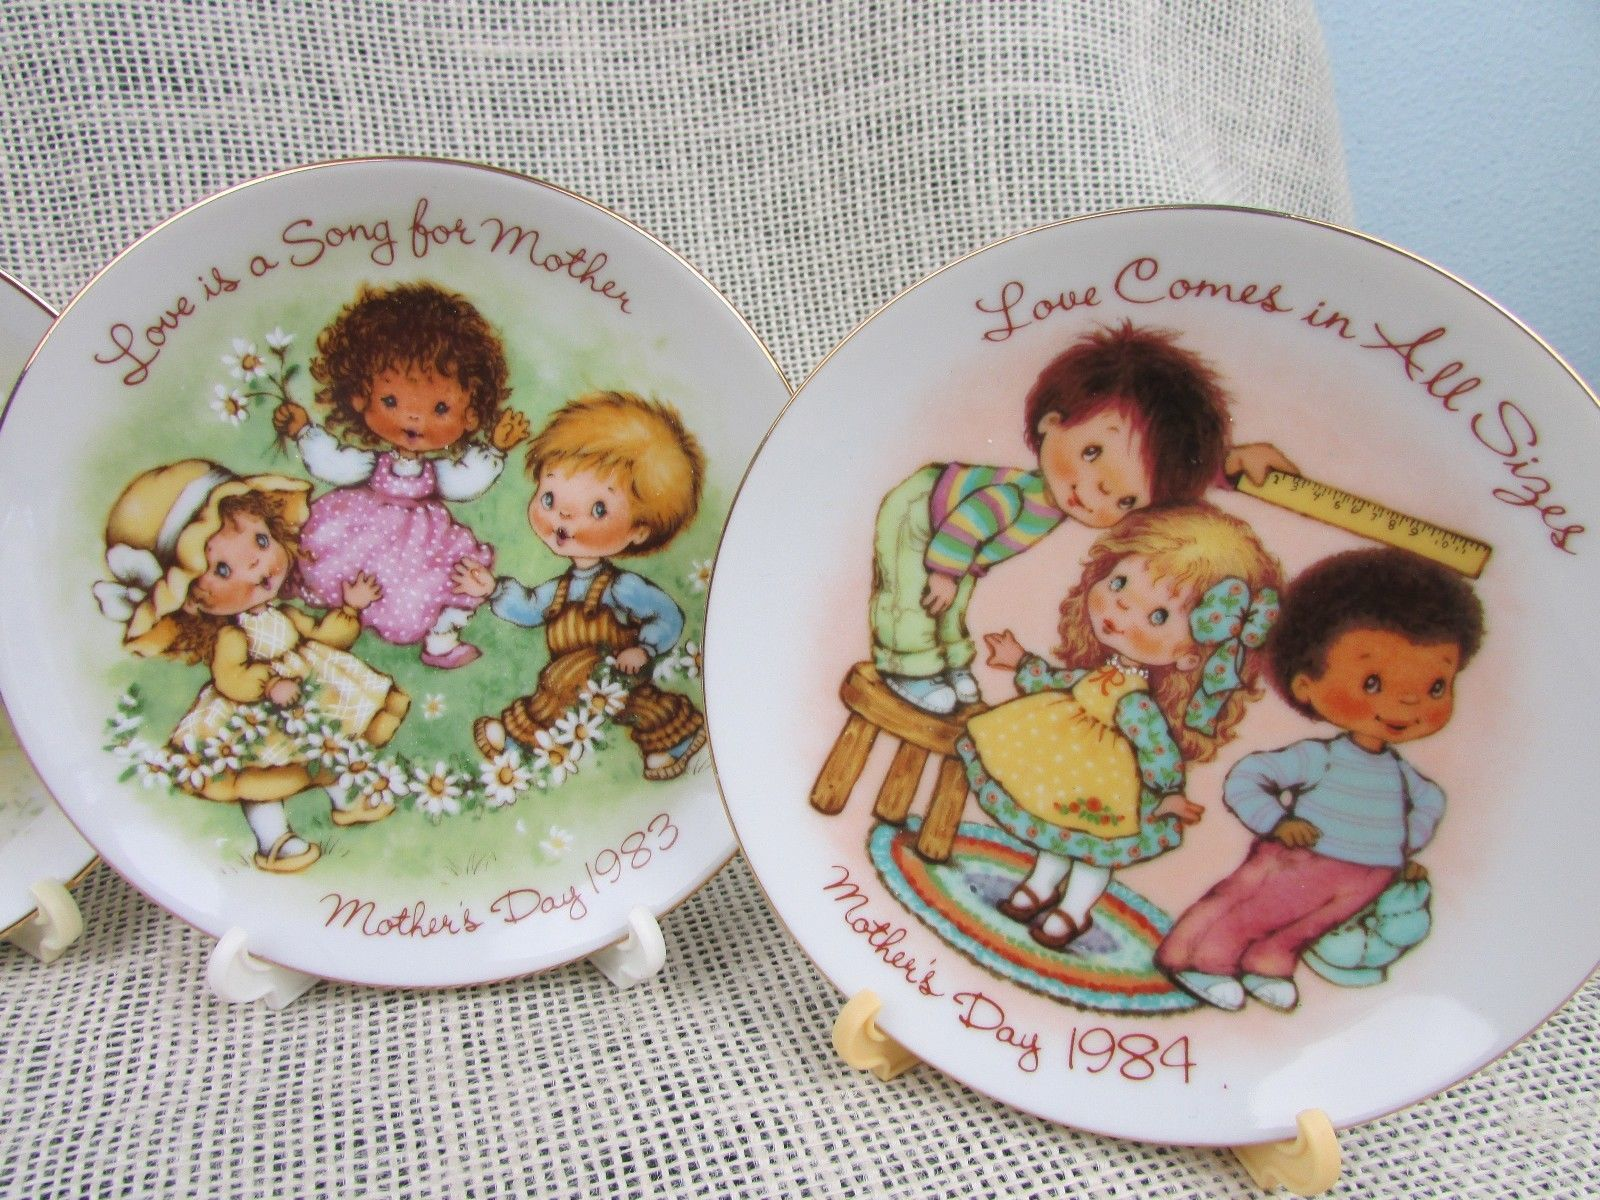 4 VINTAGE COLLECTABLE MOTHERS DAY SMALL PLATES BY AVON 1981 - 1984 w/stands